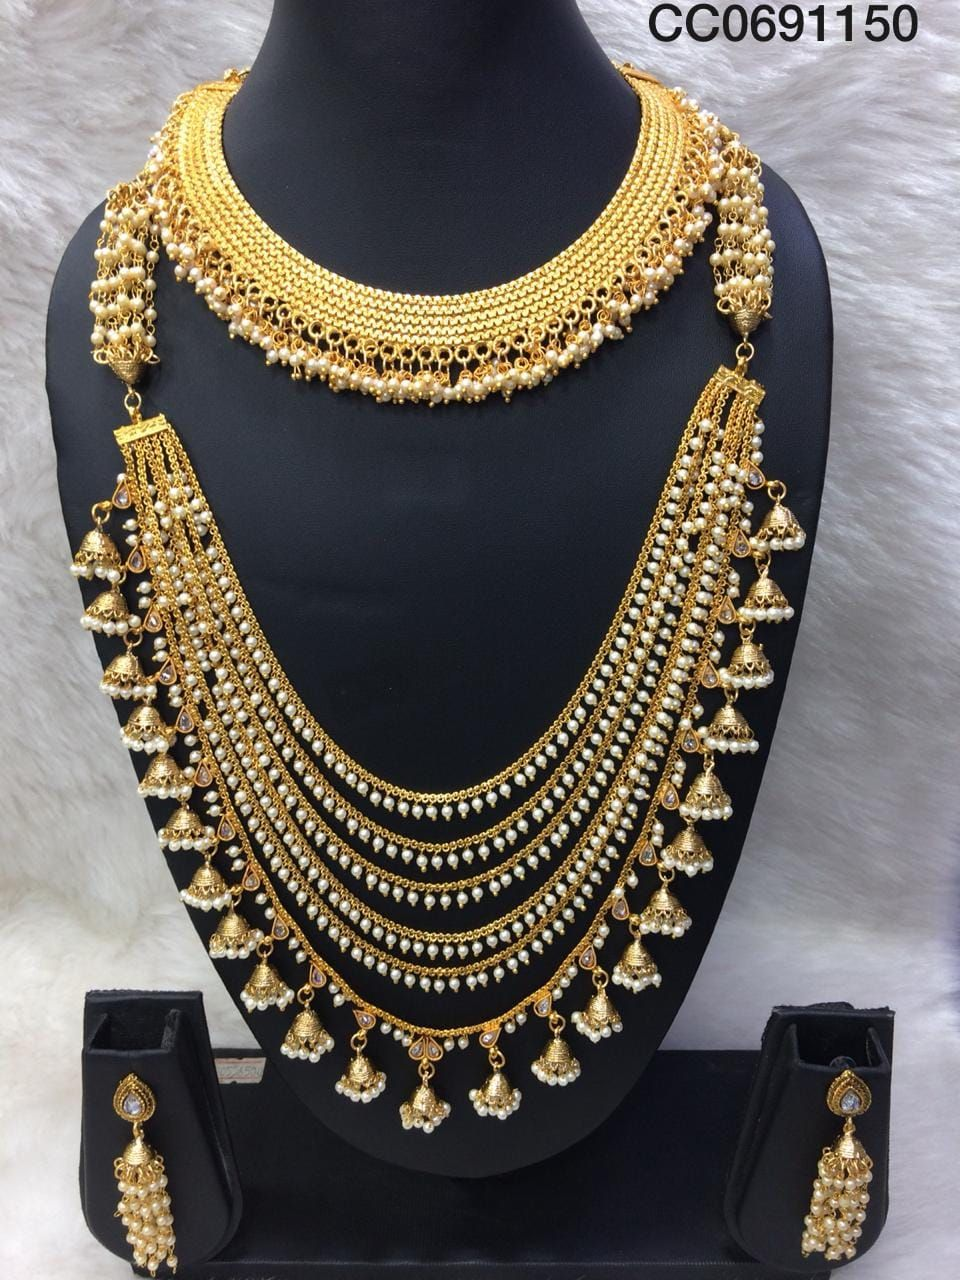 Rent Jewellery Bridal Jewelry Bridal Accessories Jewelry Necklace Set